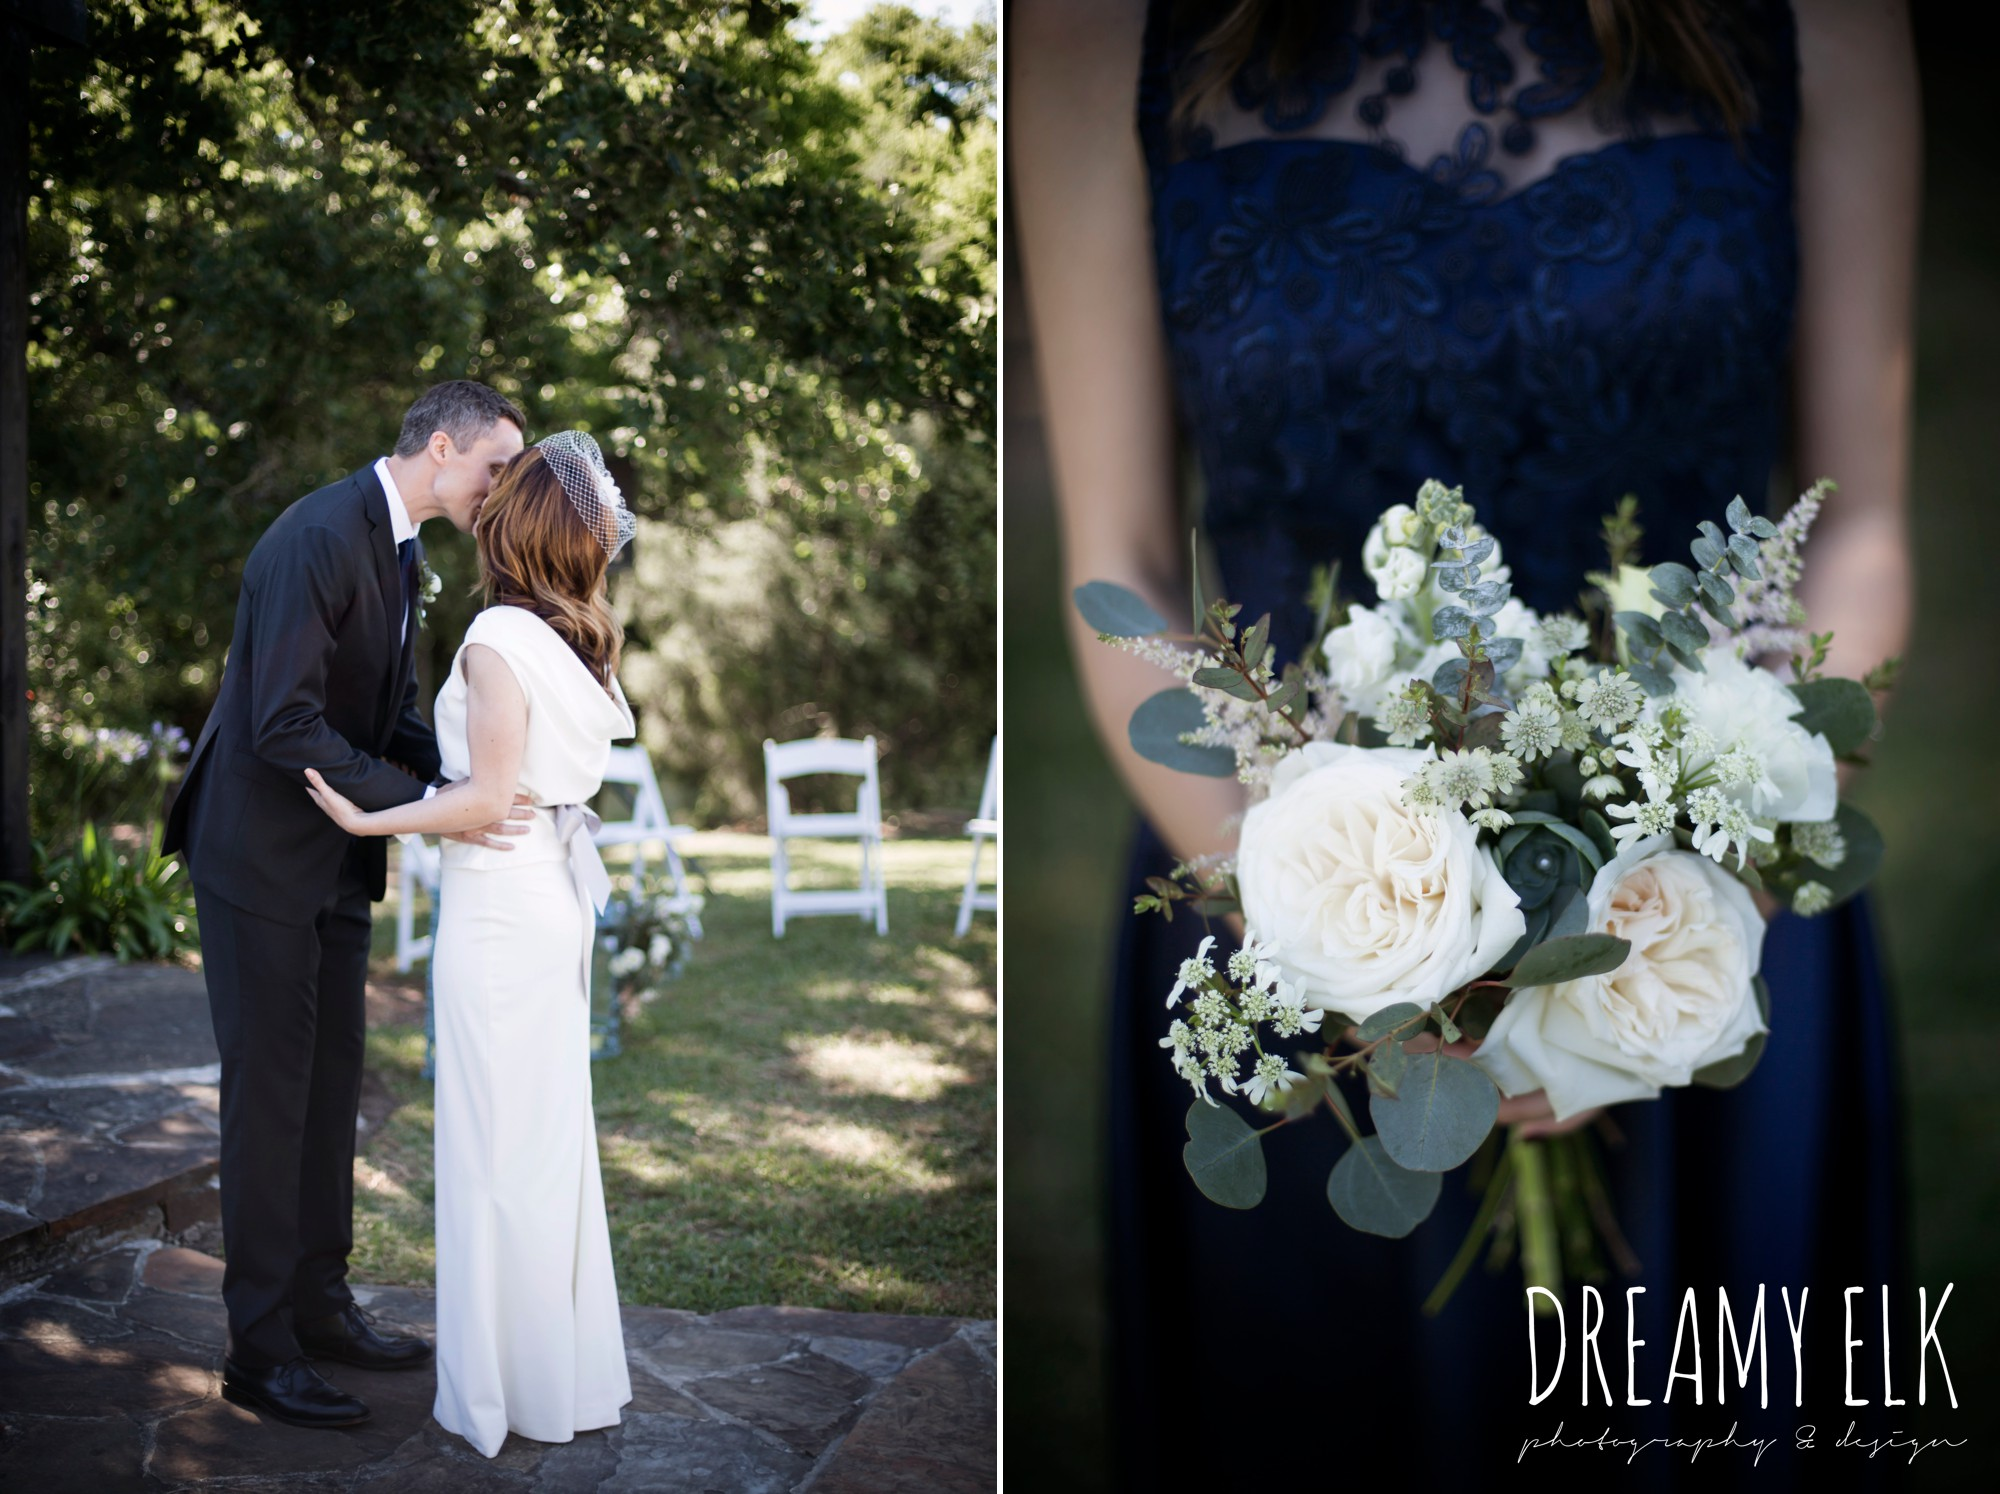 bride, groom, bridesmaid bouquet, unforgettable floral, white and green succulent wedding bouquet, handmade wedding dress, two piece wedding dress, gray sash, bird cage veil, outdoor april spring wedding photo, double creek crossing, college station, texas, austin wedding photographer {dreamy elk photography and design}